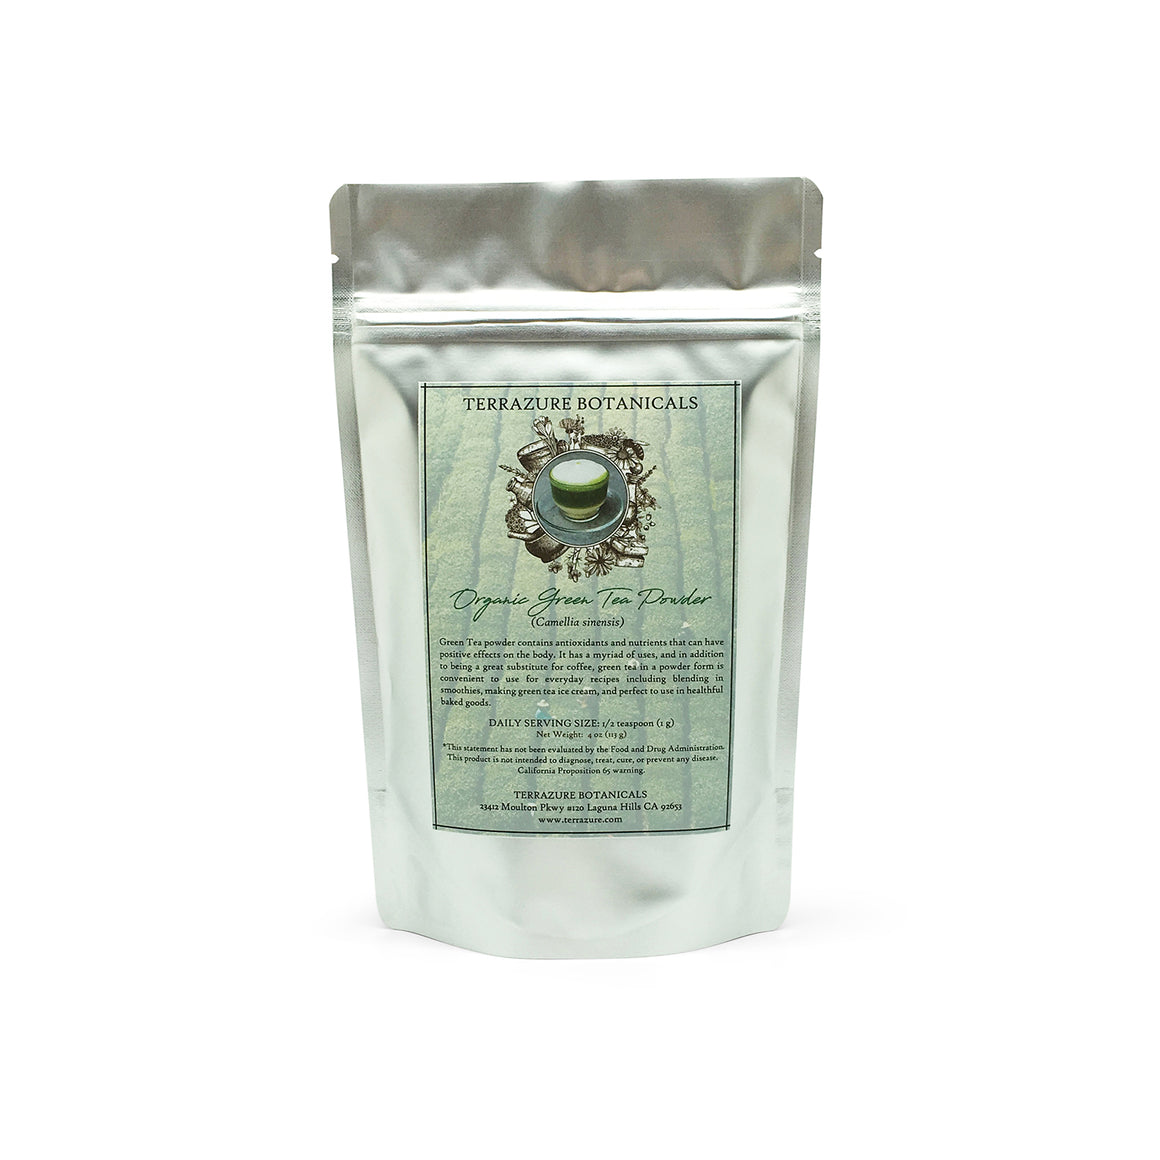 GREEN TEA Leaf Organic Powder Extract